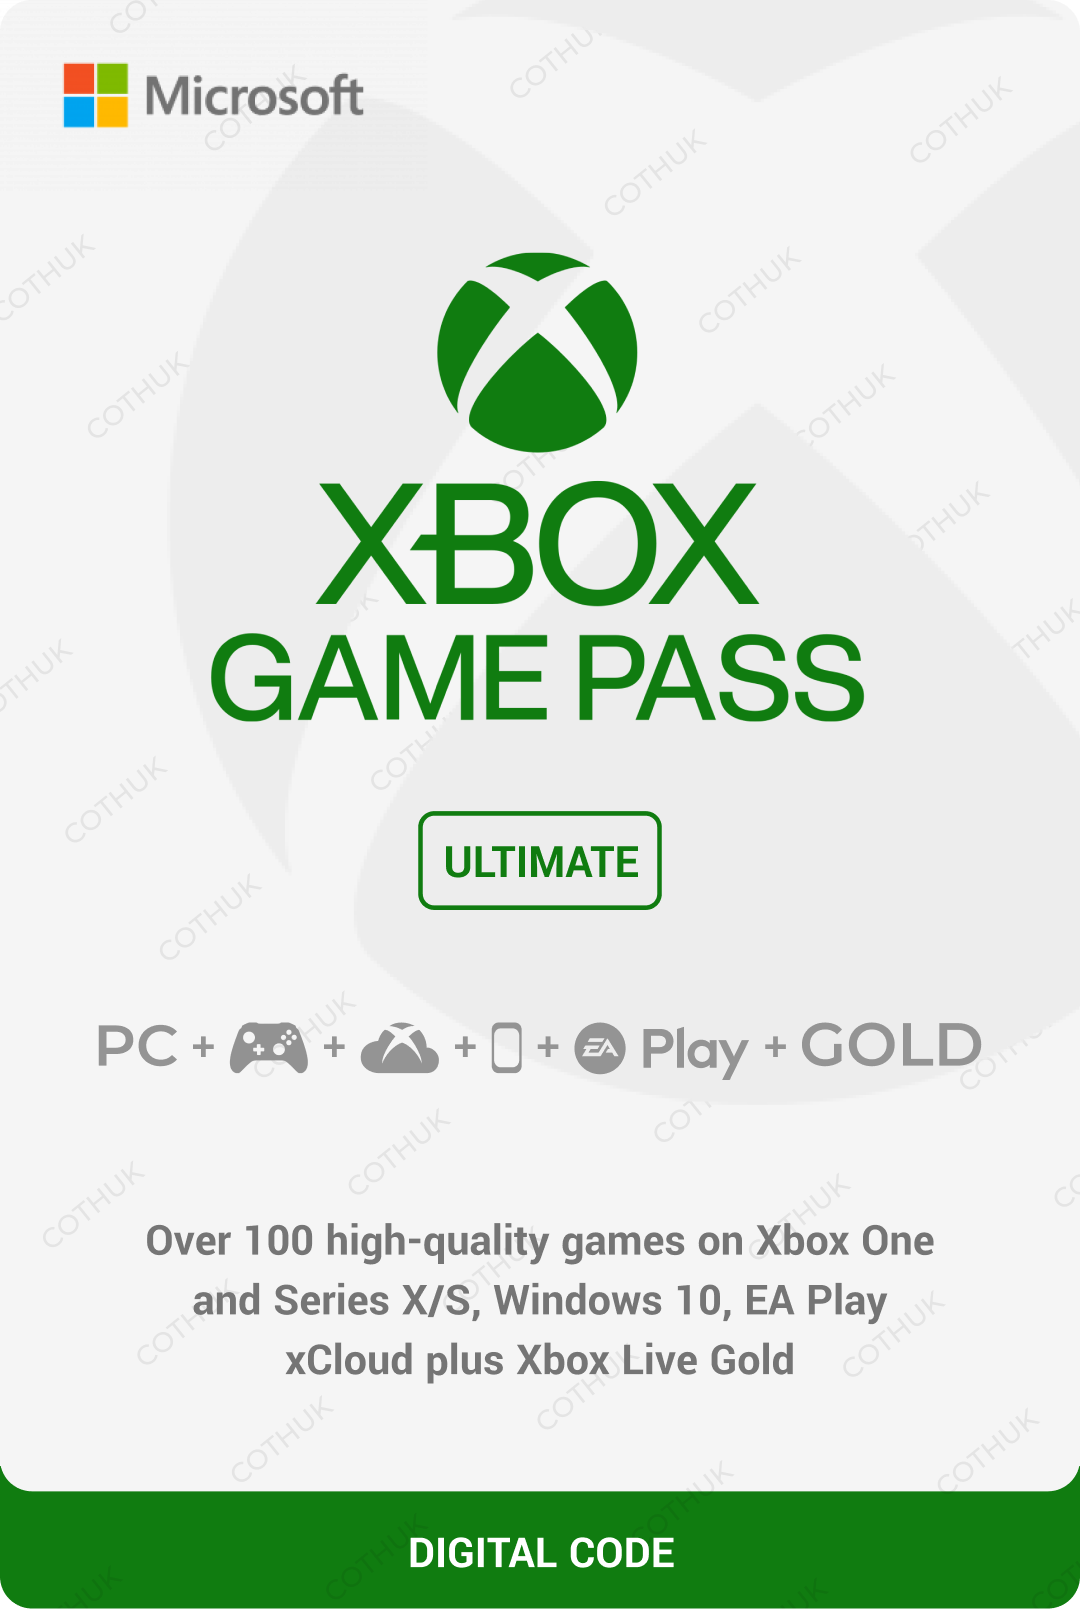 XBOX GAME PASS ULTIMATE 7 days + Region free + Renewal